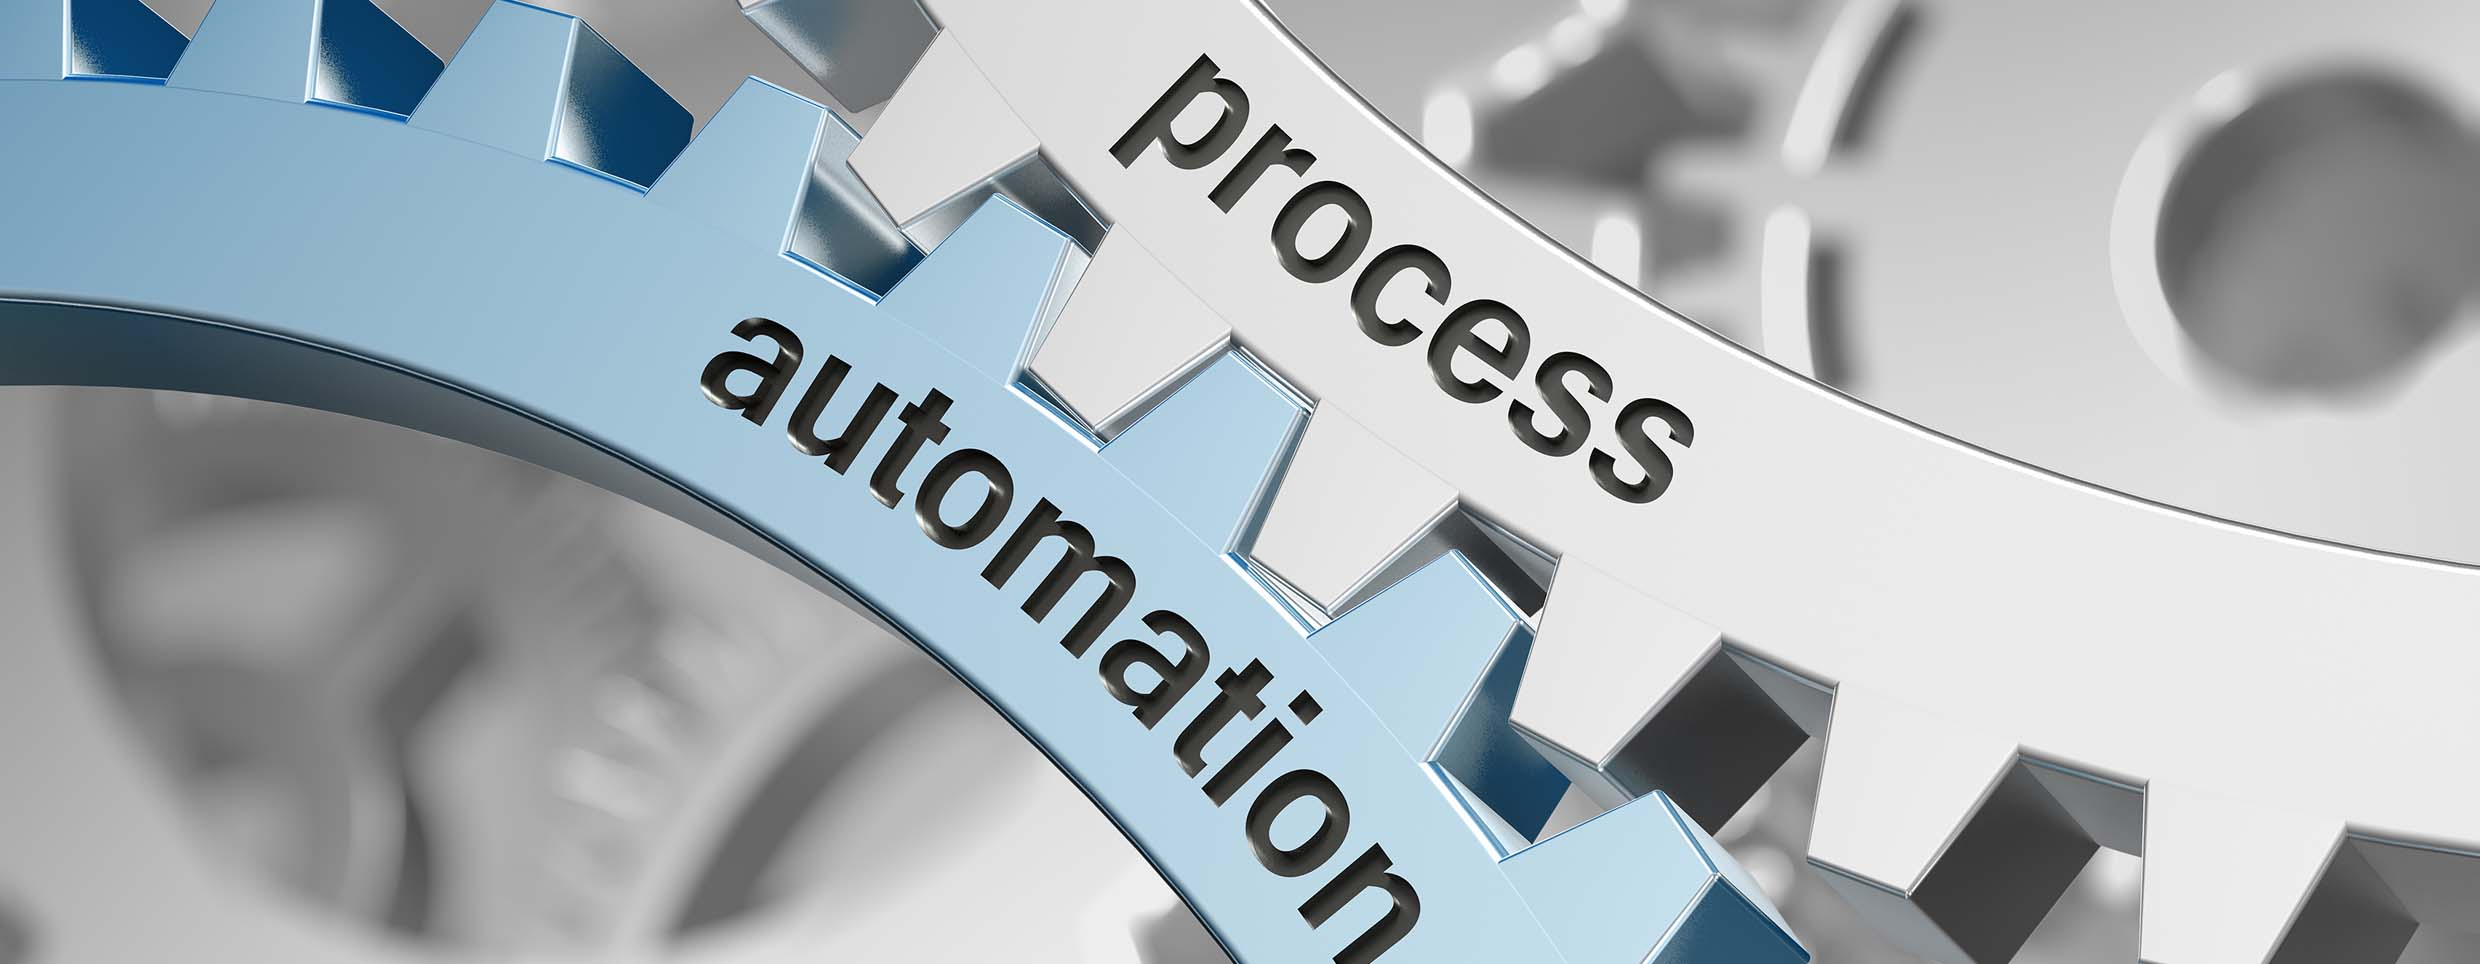 runbook automation process automation